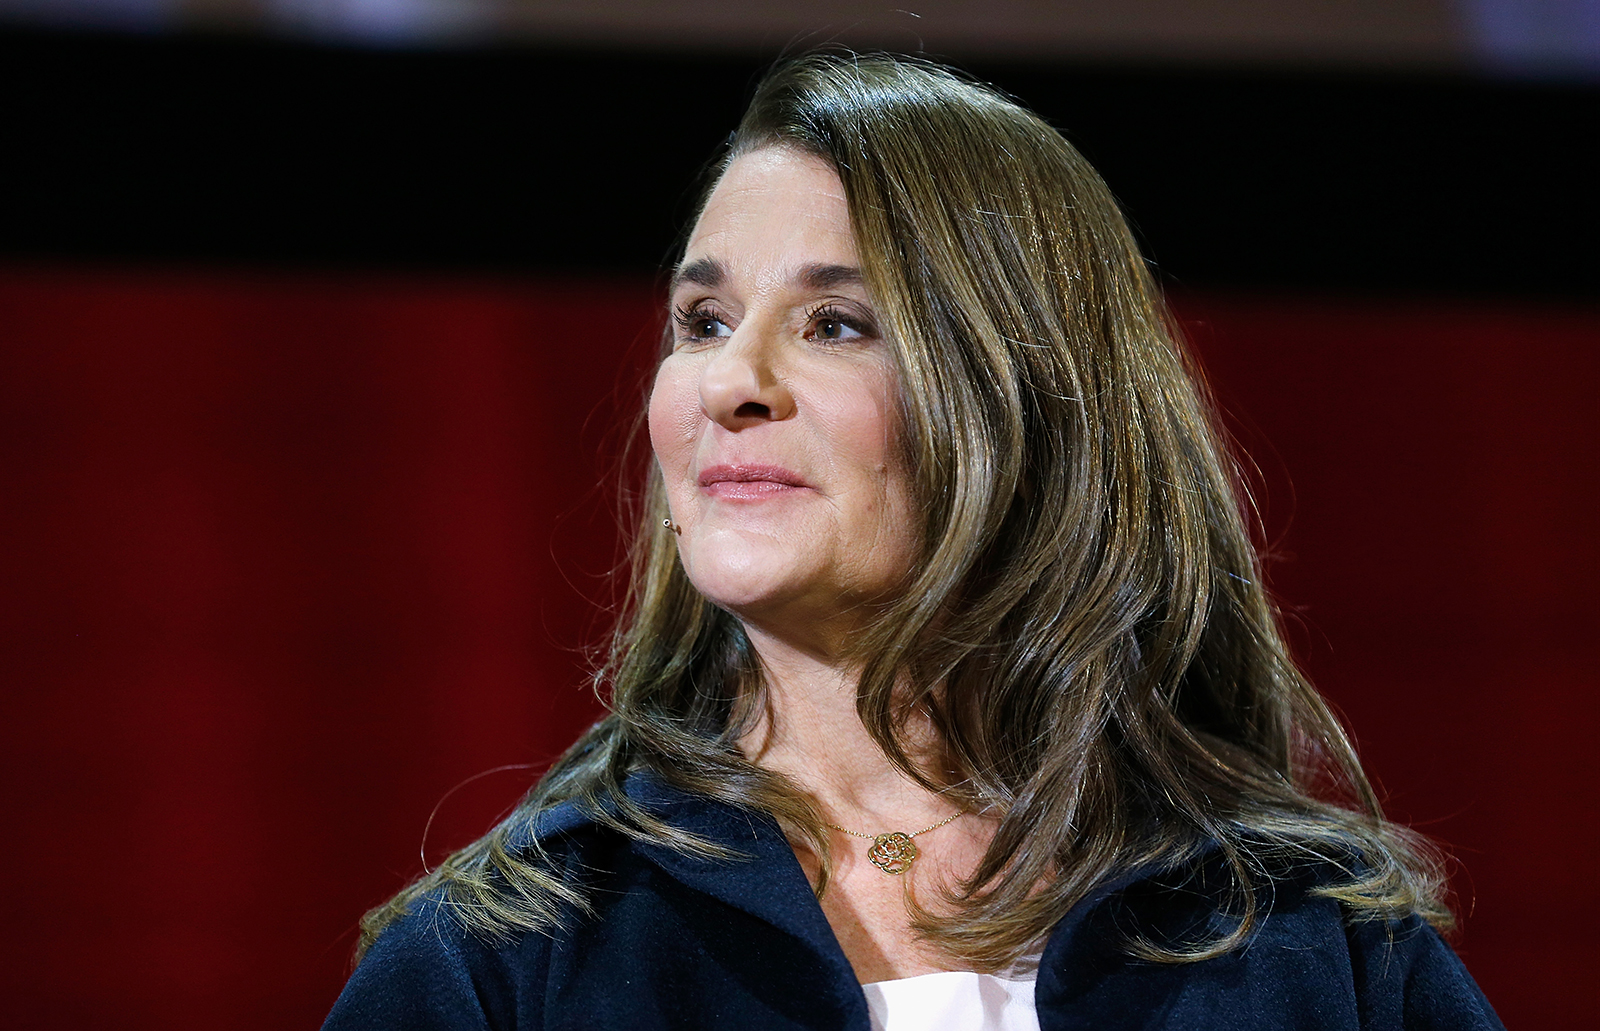 Melinda Gates speaks at Hunter College on February 13, 2018 in New York City.